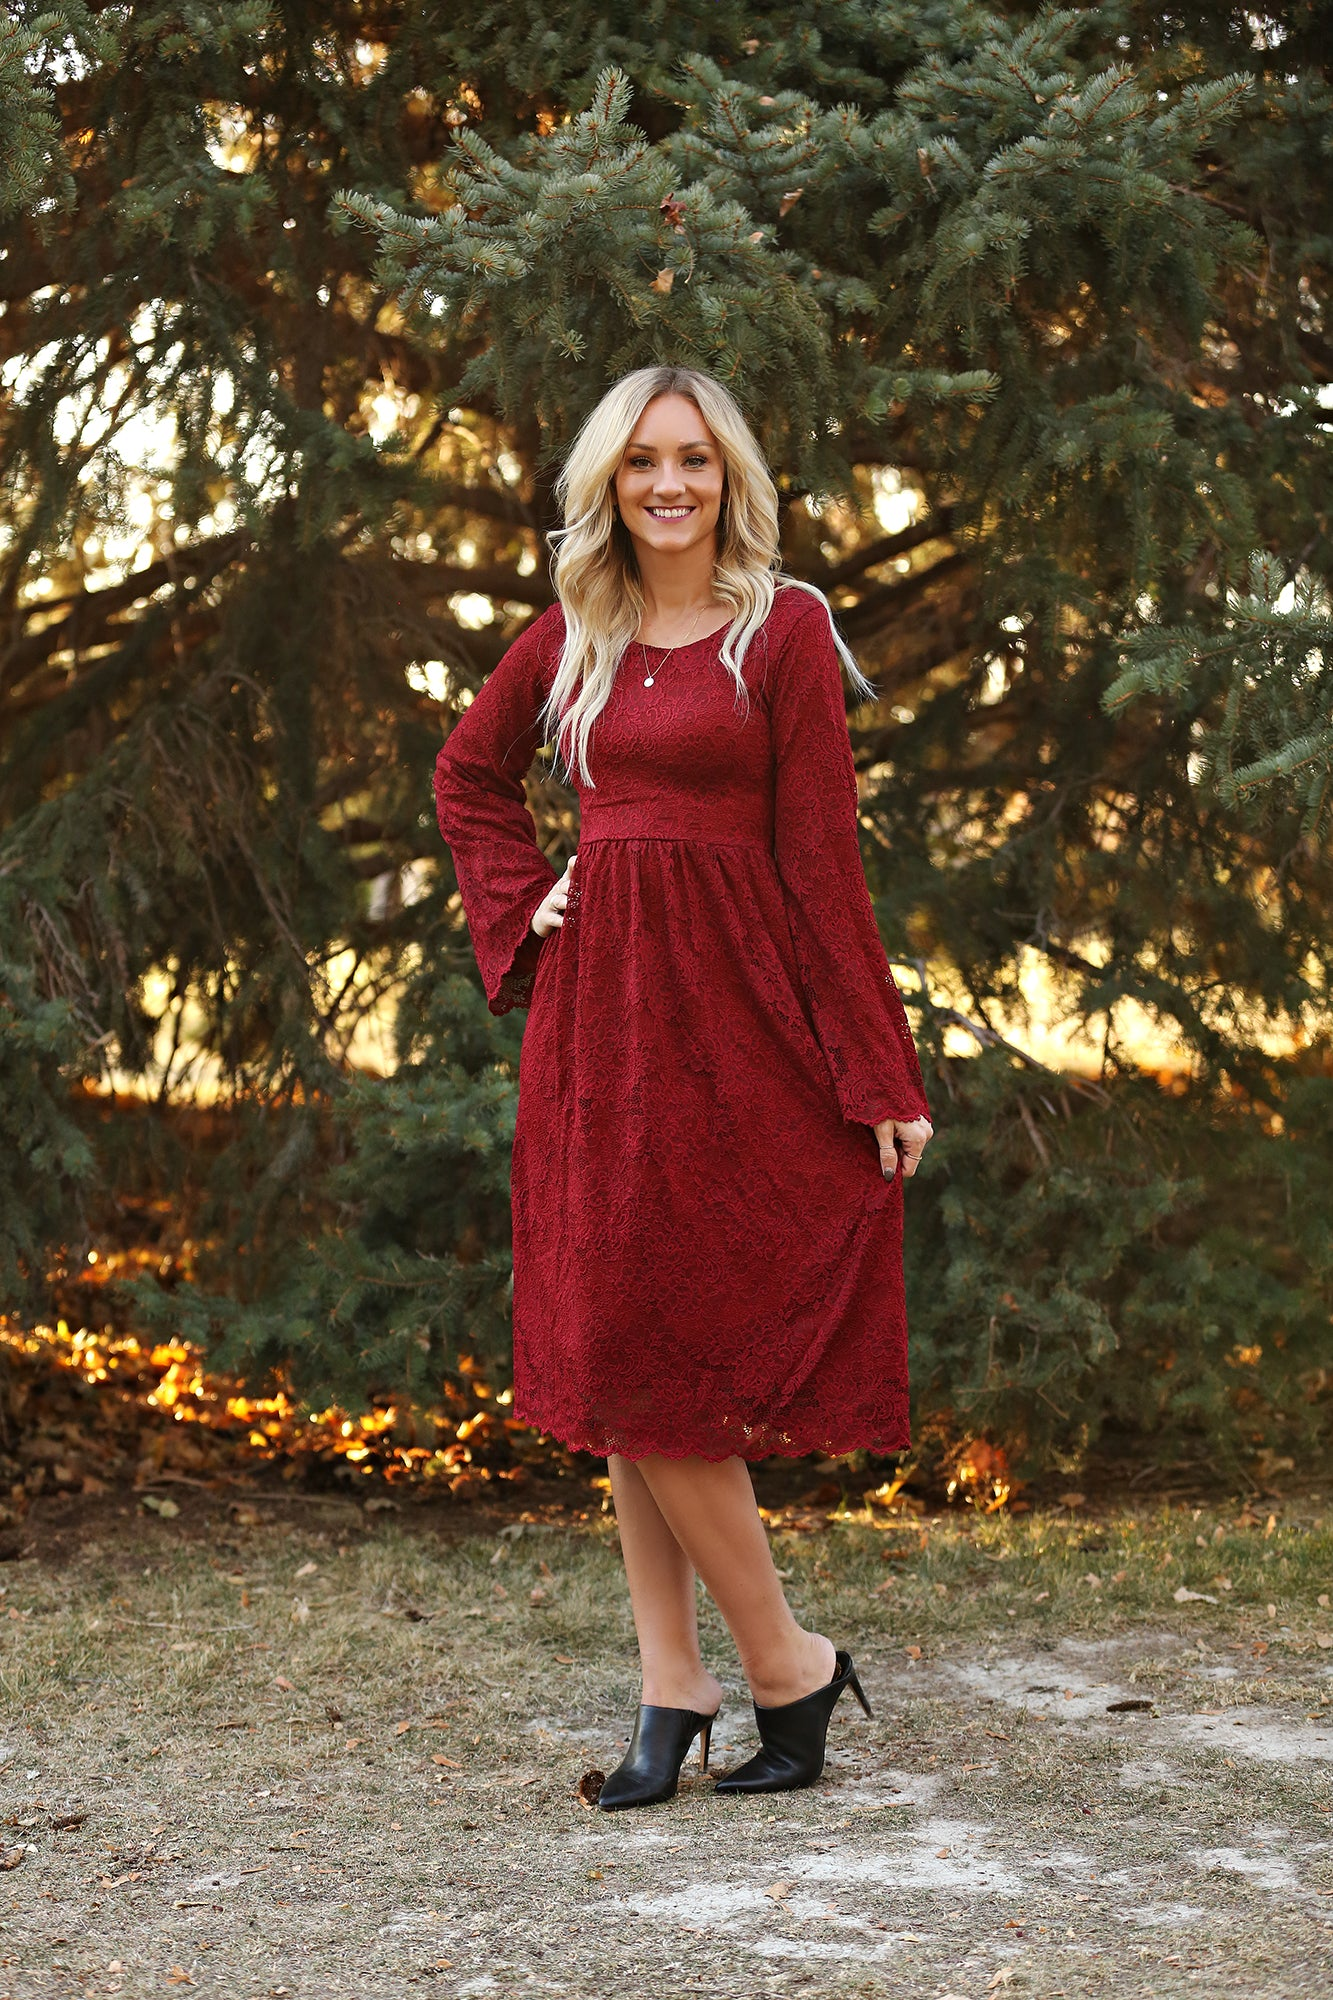 Eden Burgandy Lace Women's Dress